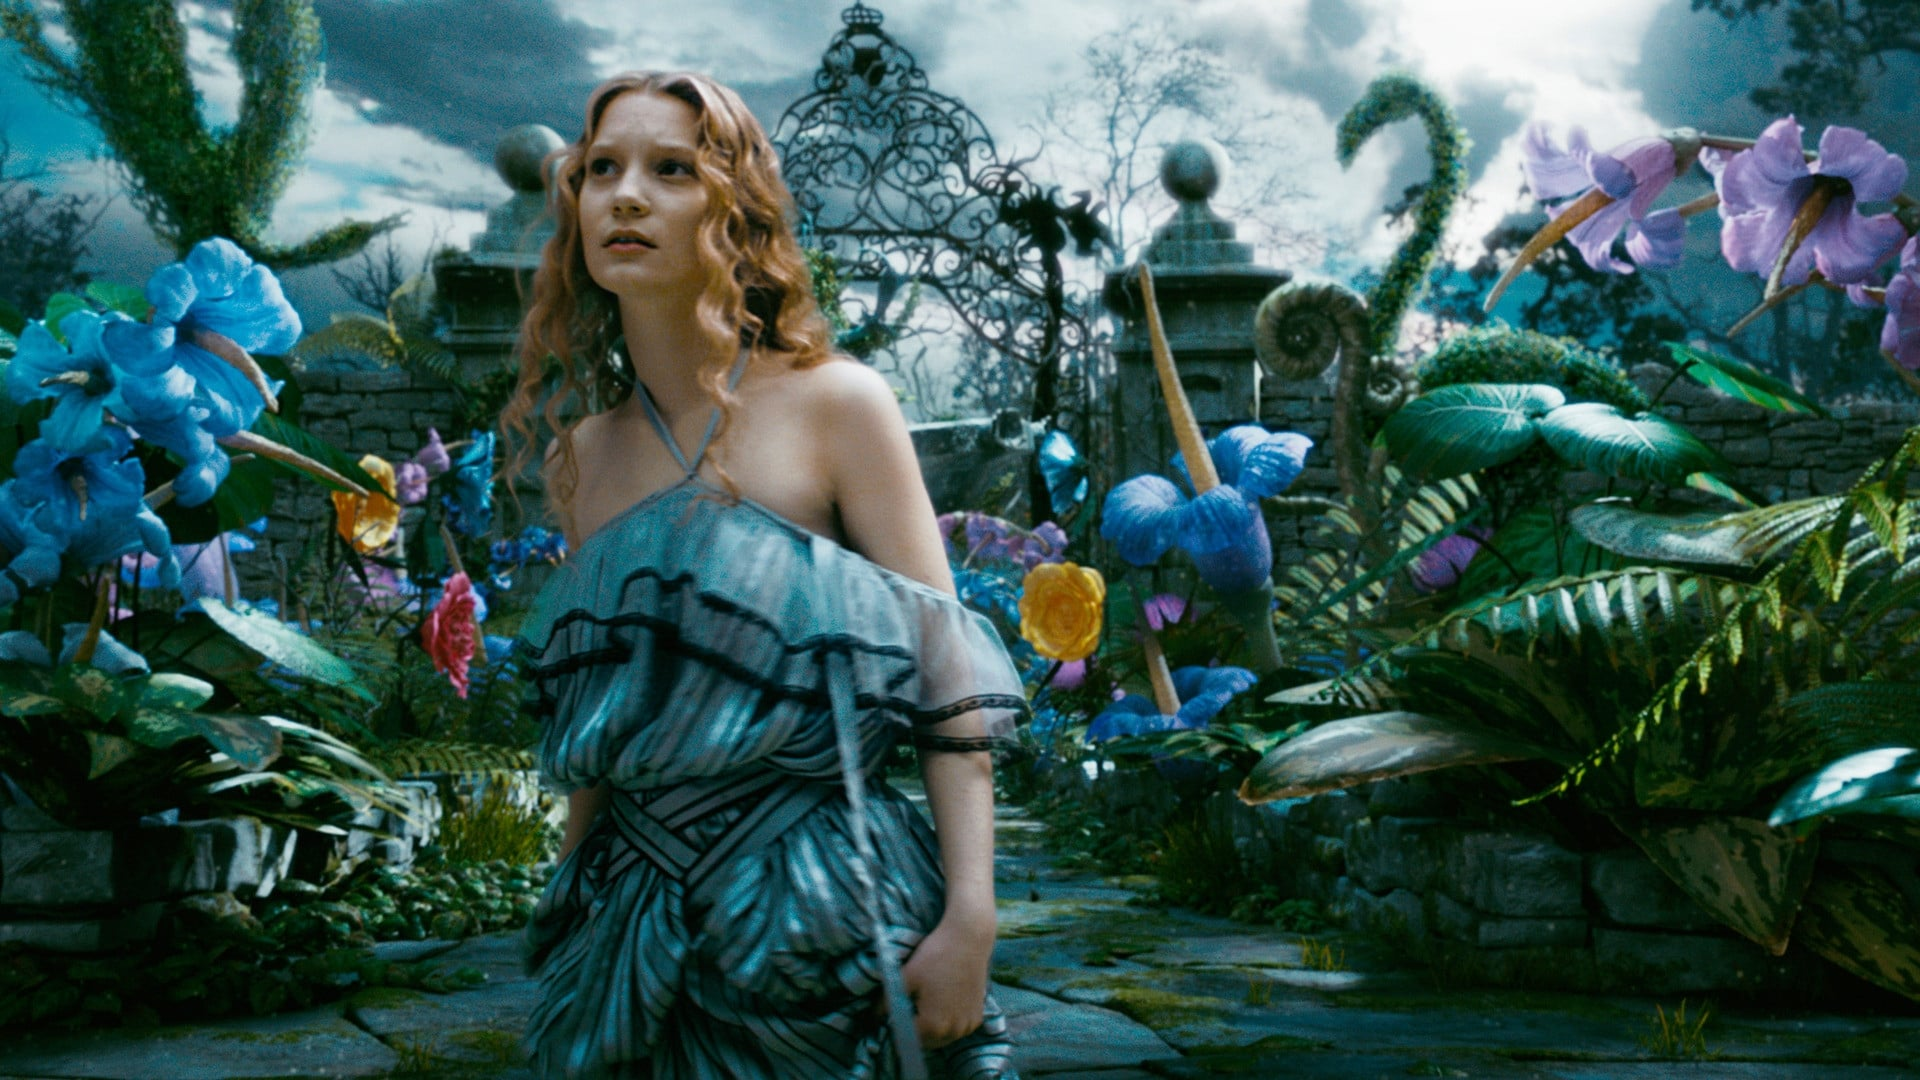 alice in wonderland 2010 Alice in wonderland - trailer 01:58 — alice returns to the whimsical world she first encountered as a young girl and reunites with her childhood friends: the white rabbit, tweedledee and t (more.